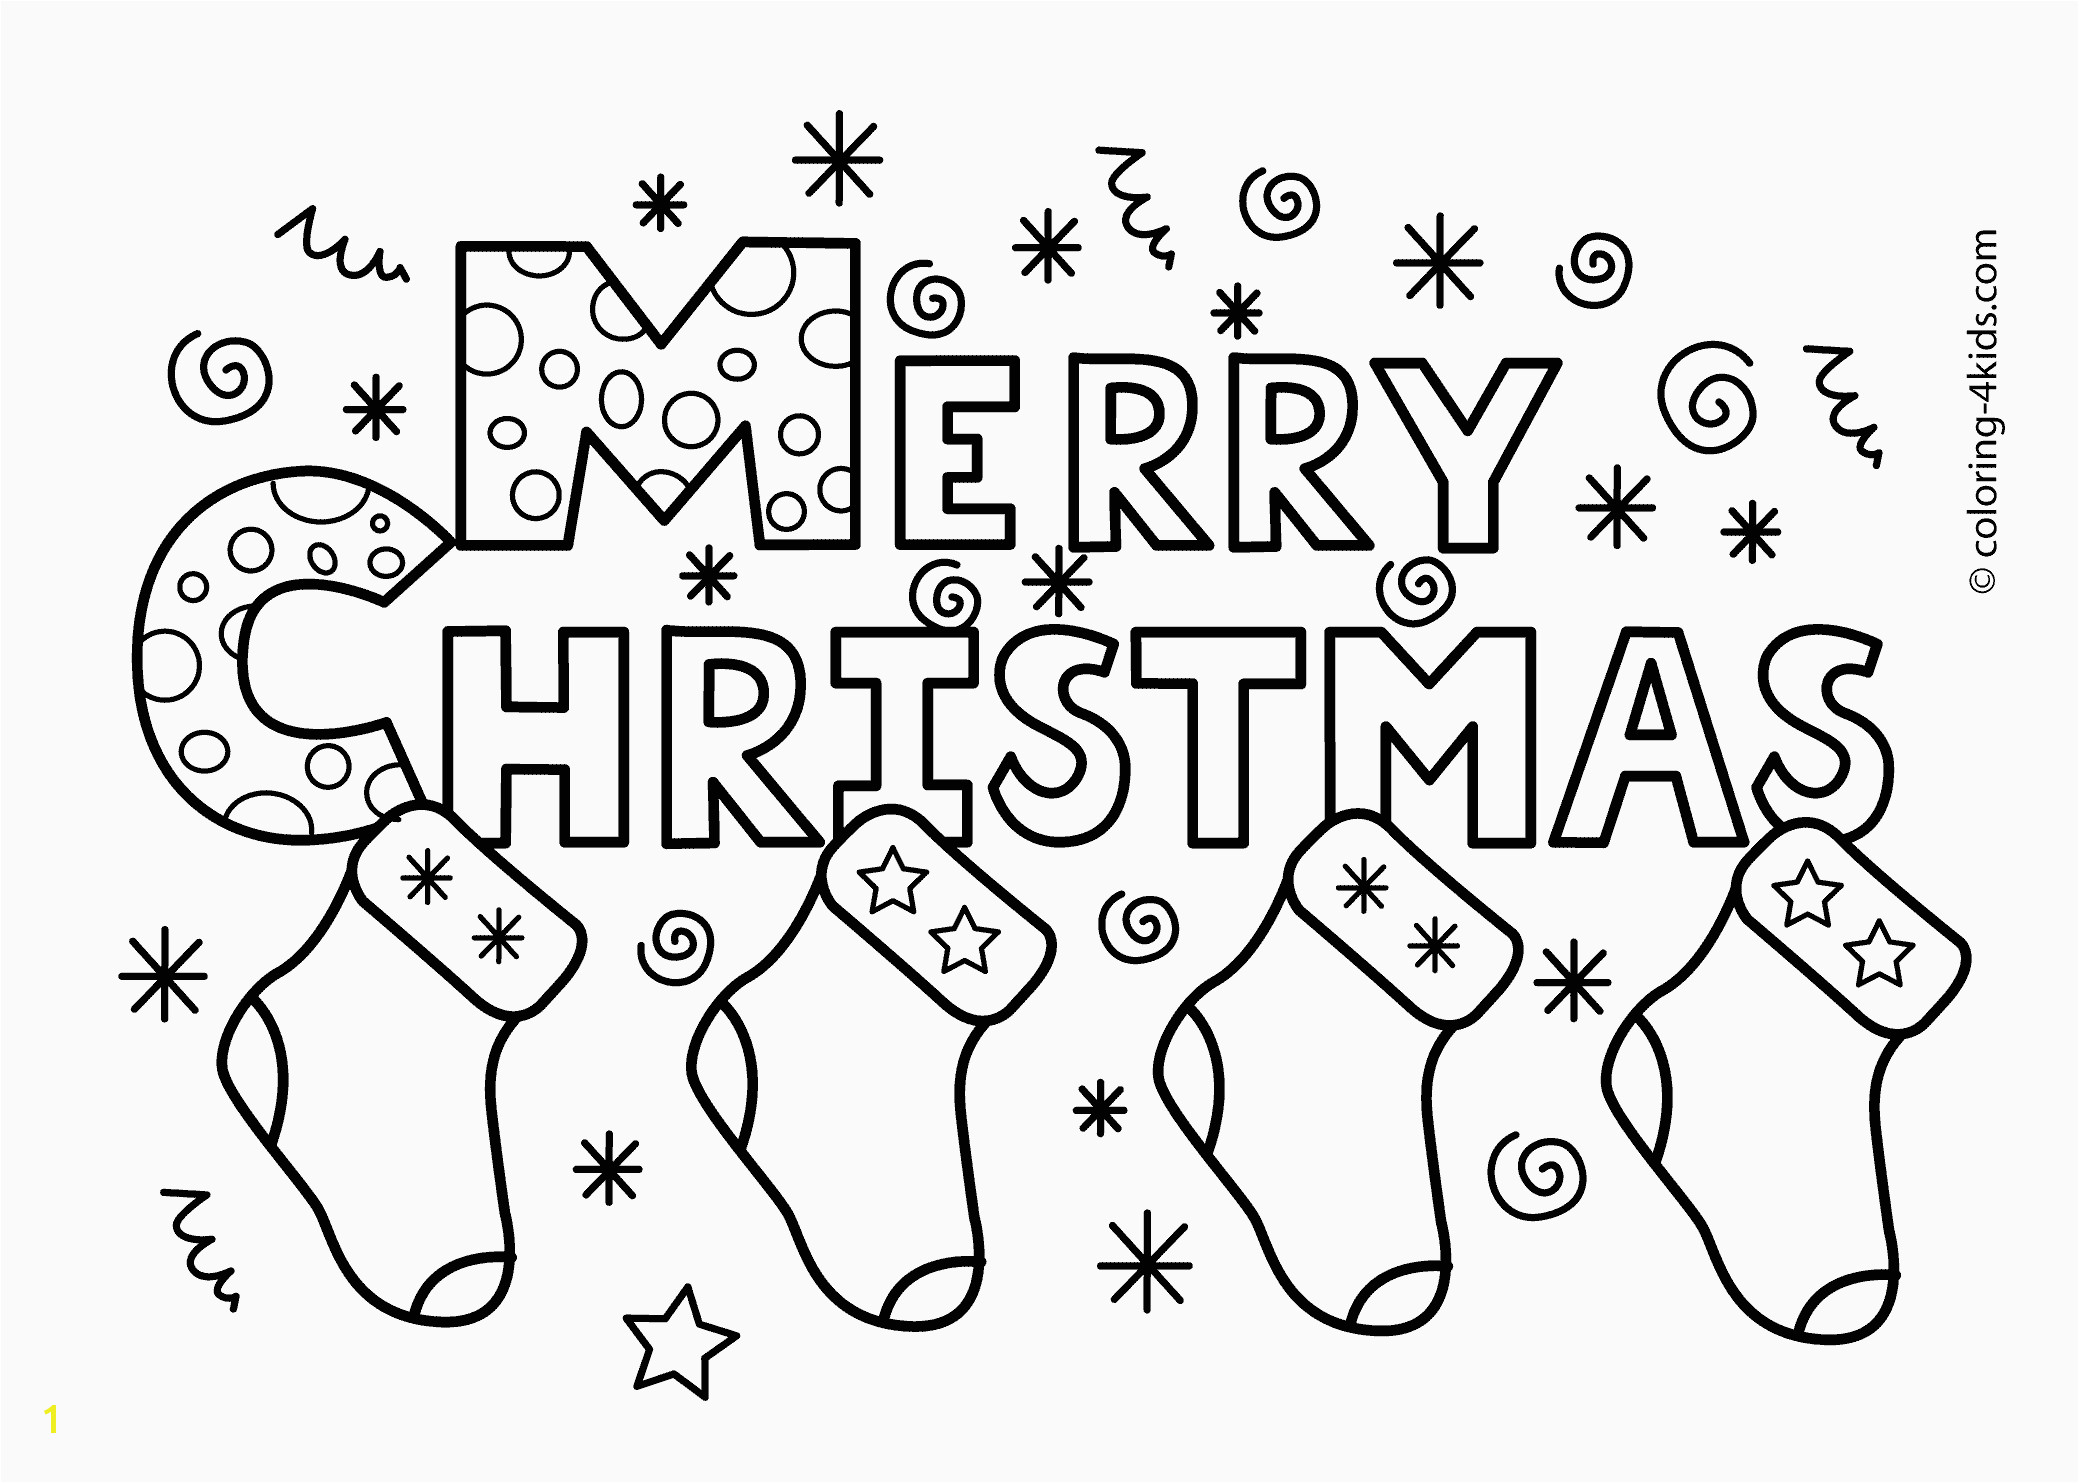 Candy Cane Coloring Sheets Luxury Free Christmas Coloring Books Printable Luxury Free Printable Candy